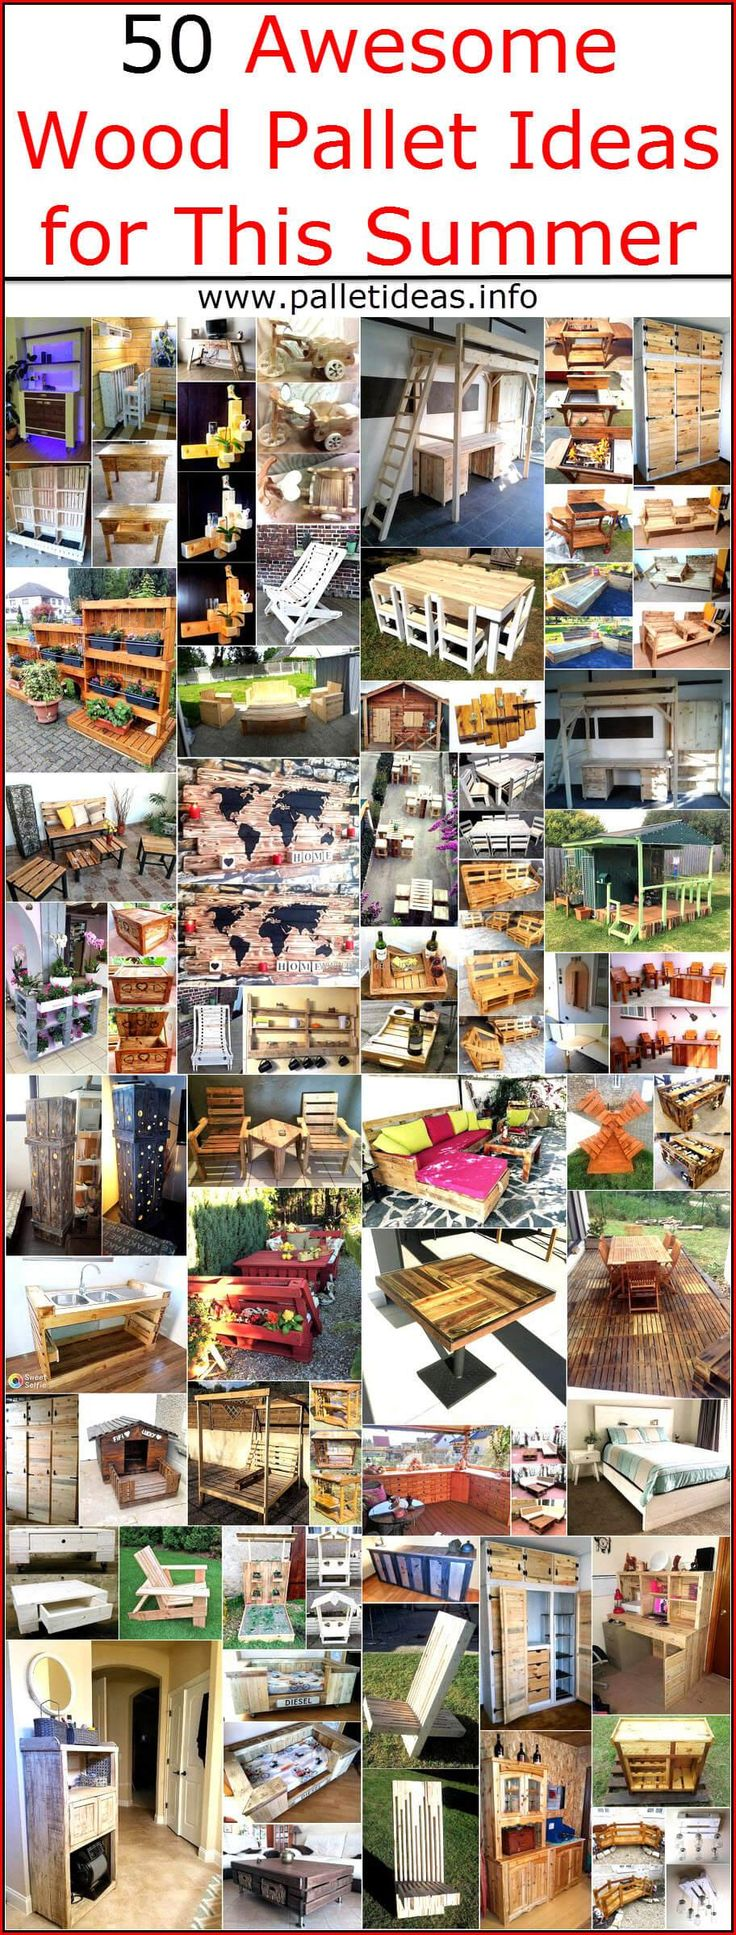 Wise people never run to the market when they purchase a new home or when they need furniture for completing the home because they know there are materials available which can be modified to get the furniture for fulfilling the requirement in the home. Wood pallets are one of the best materials that can be restyled for getting the innovatively designed furniture and other items of daily use. Here we are going to show you 50 awesome wood pallet ideas, which are easy to copy and are shown…